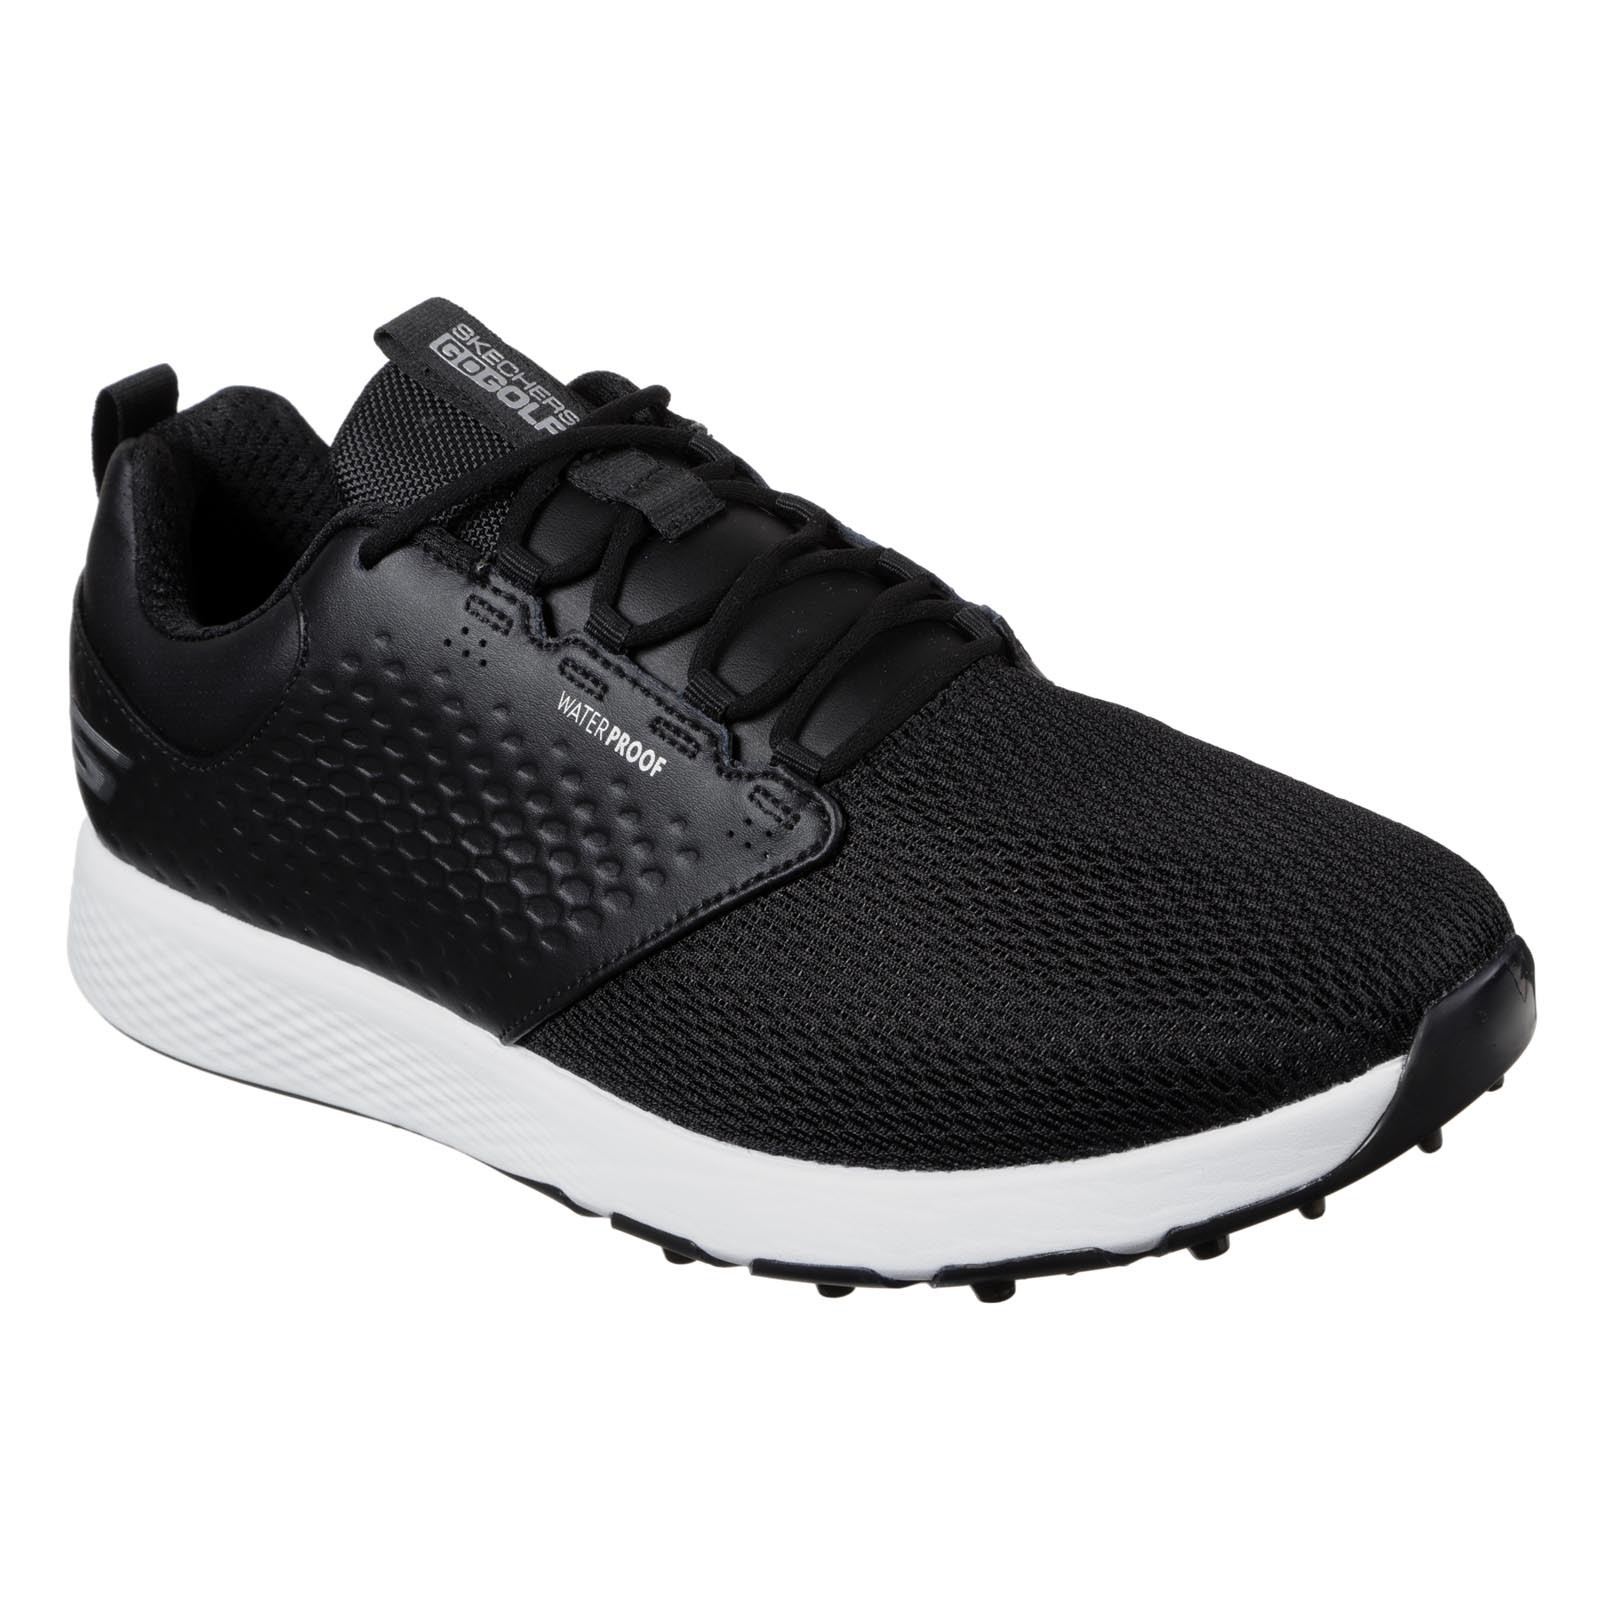 Skechers Elite 4 Prestige